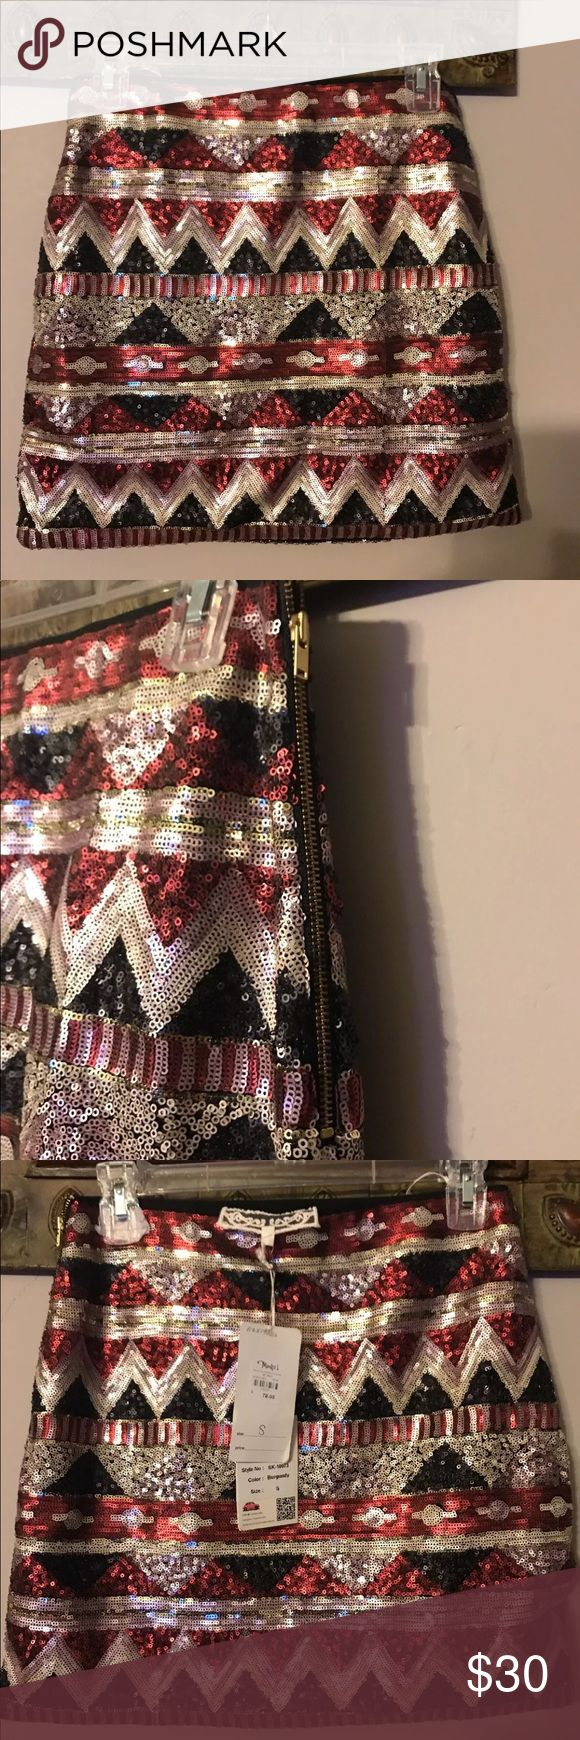 "NWT PINK MARTINI BLACK RED SEQUIN MINI SKIRT SZ SM SEQUINS MINI SKIRT RED BLACK AND PINK SIDE ZIPPER FULLY LINED ORIGINAL PRICE $78  WAIST 14"" HIPS 18"" LENGTH 15.5""  STORED IN A PET AND SMOKE FREE HOME   PLEASE FEEL FREE TO CONTACT ME WITH ANY QUESTIONS OR CONCERNS   THANKS FOR LOOKING AT MY ITEMS Pink Martini Skirts Mini"